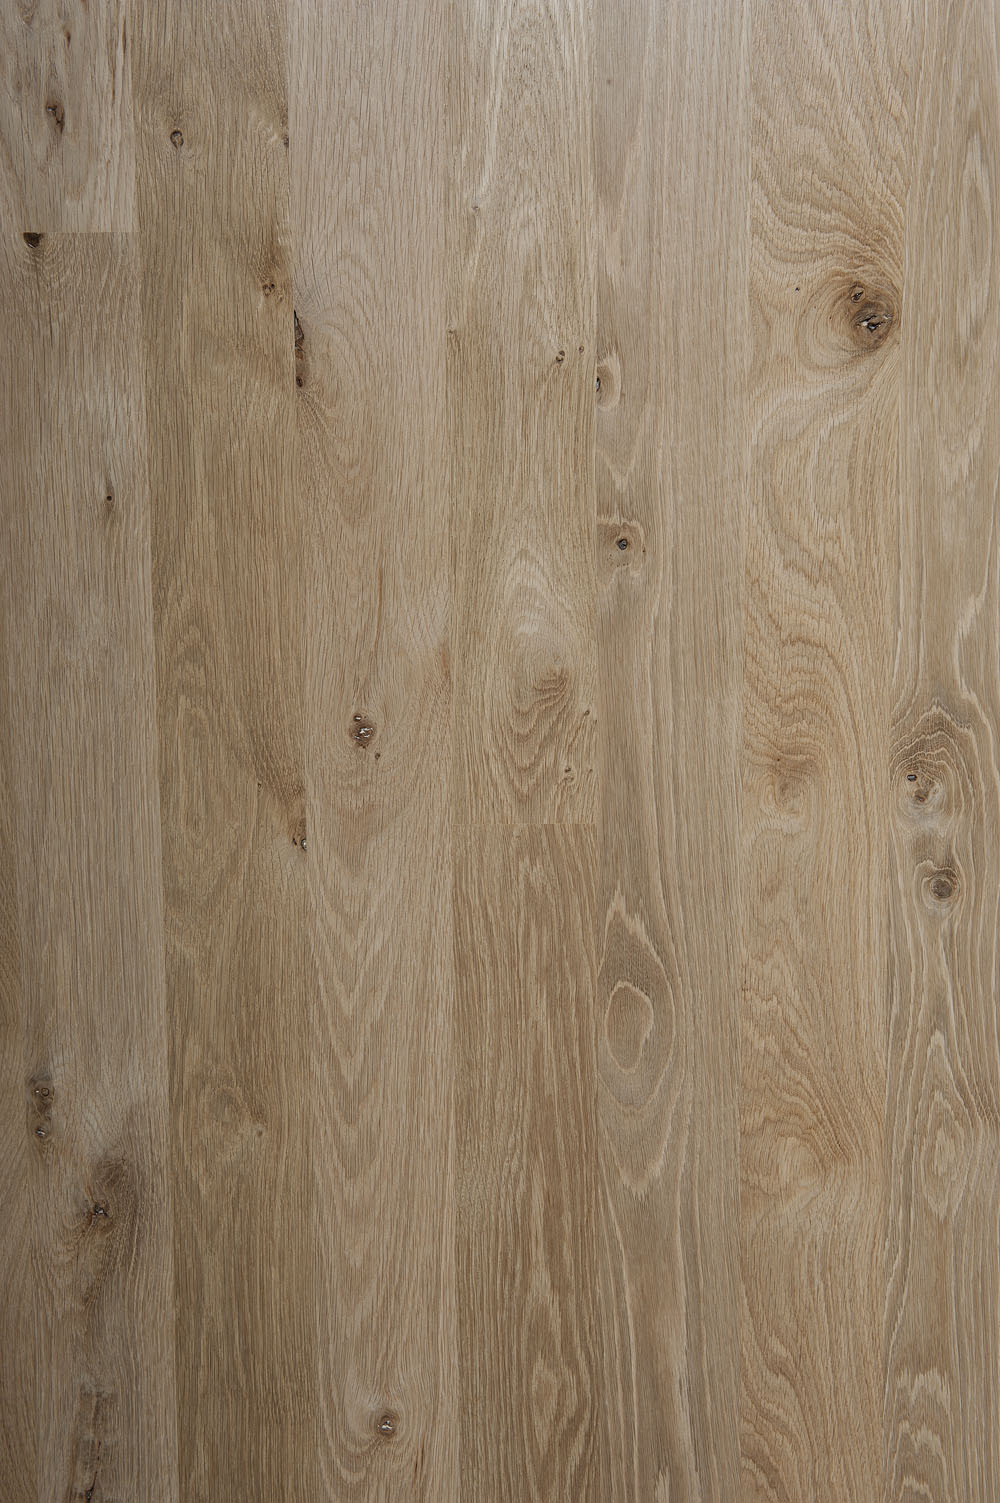 Unfinished Northern White Oak 2 Common